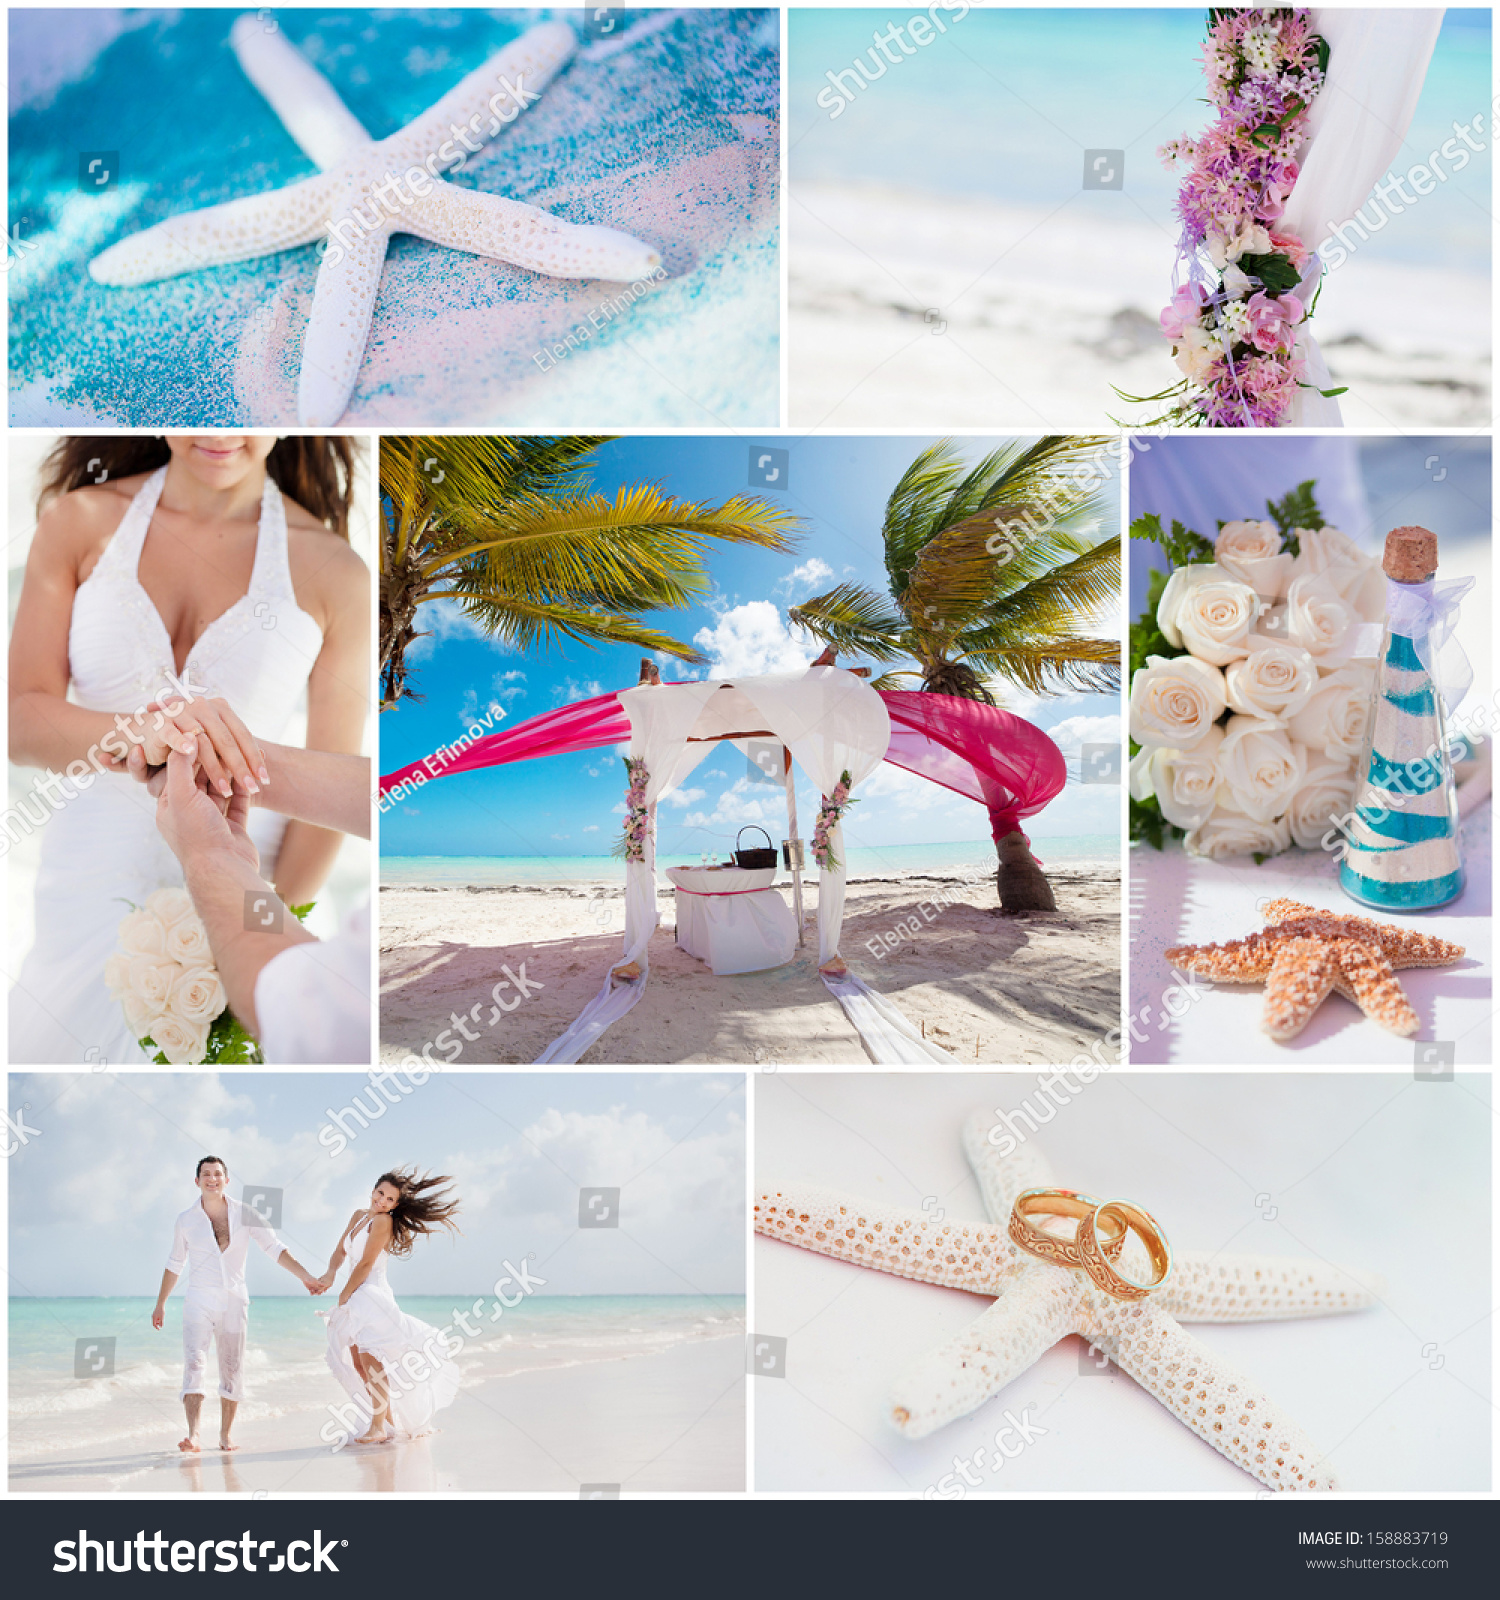 Beach Wedding Ceremony Playlist: Wedding Ceremony When On Beach Collage Stock Photo